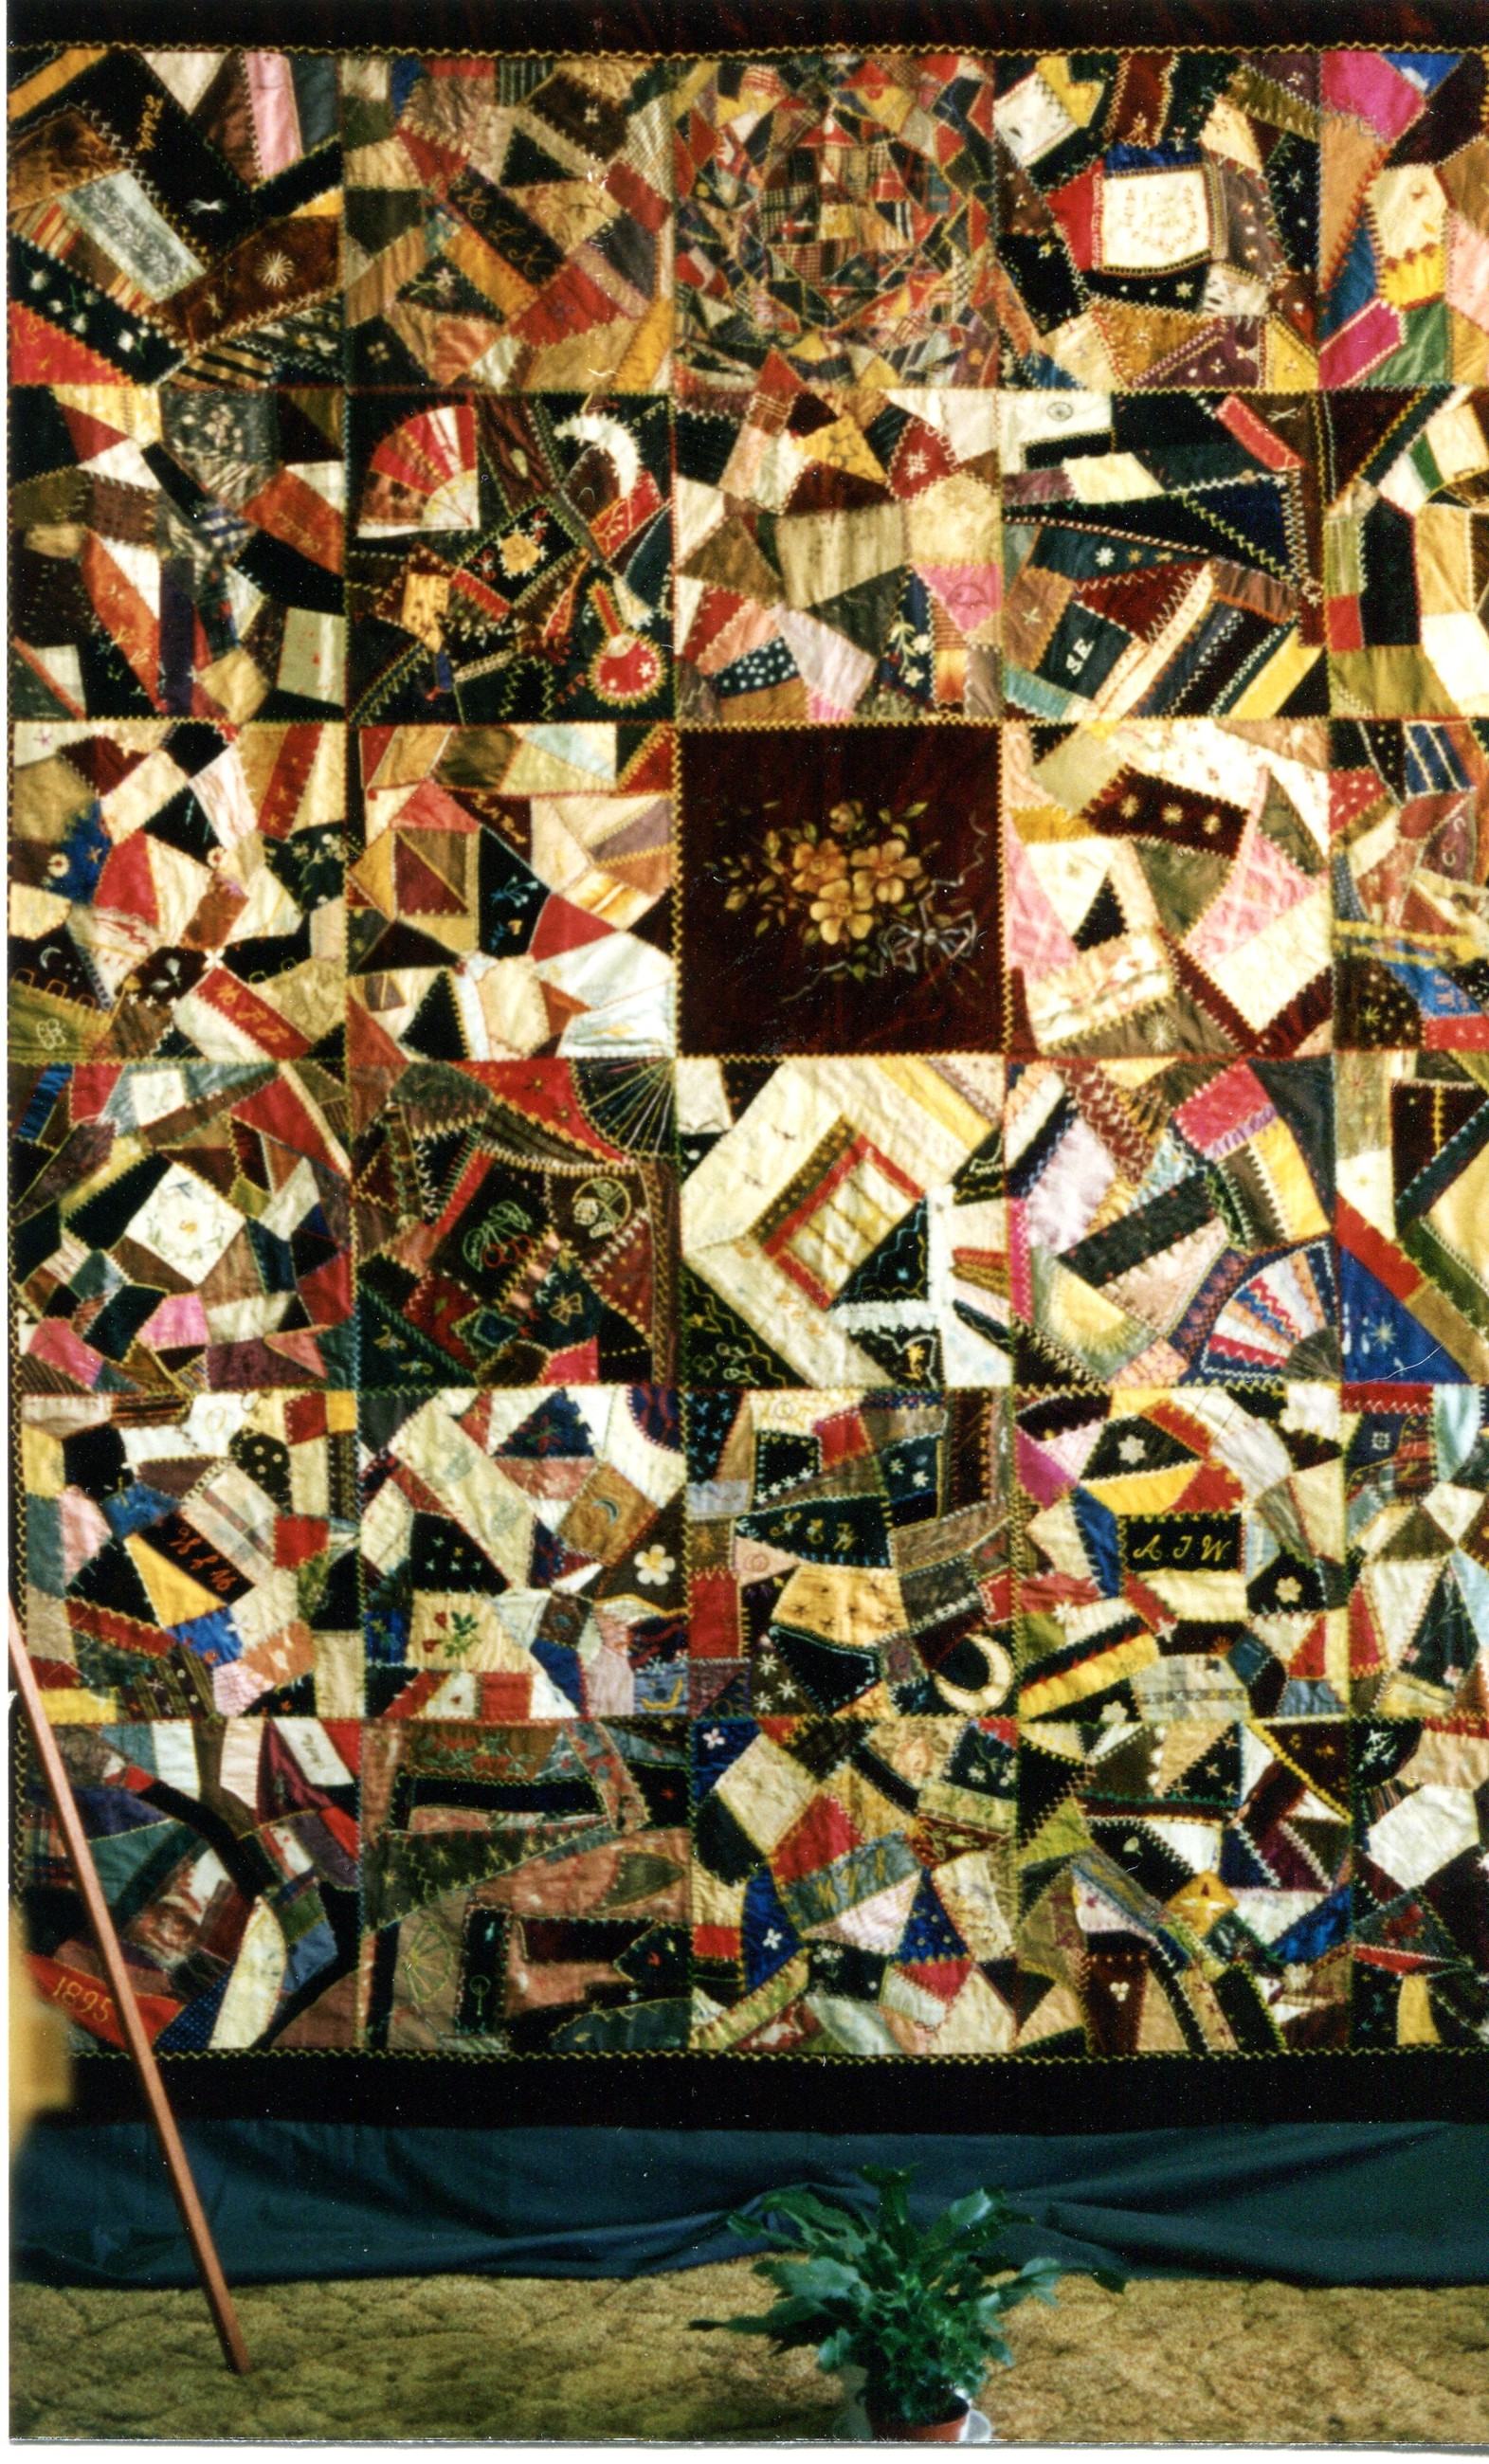 Dr. Dupre's Quilt, 1895